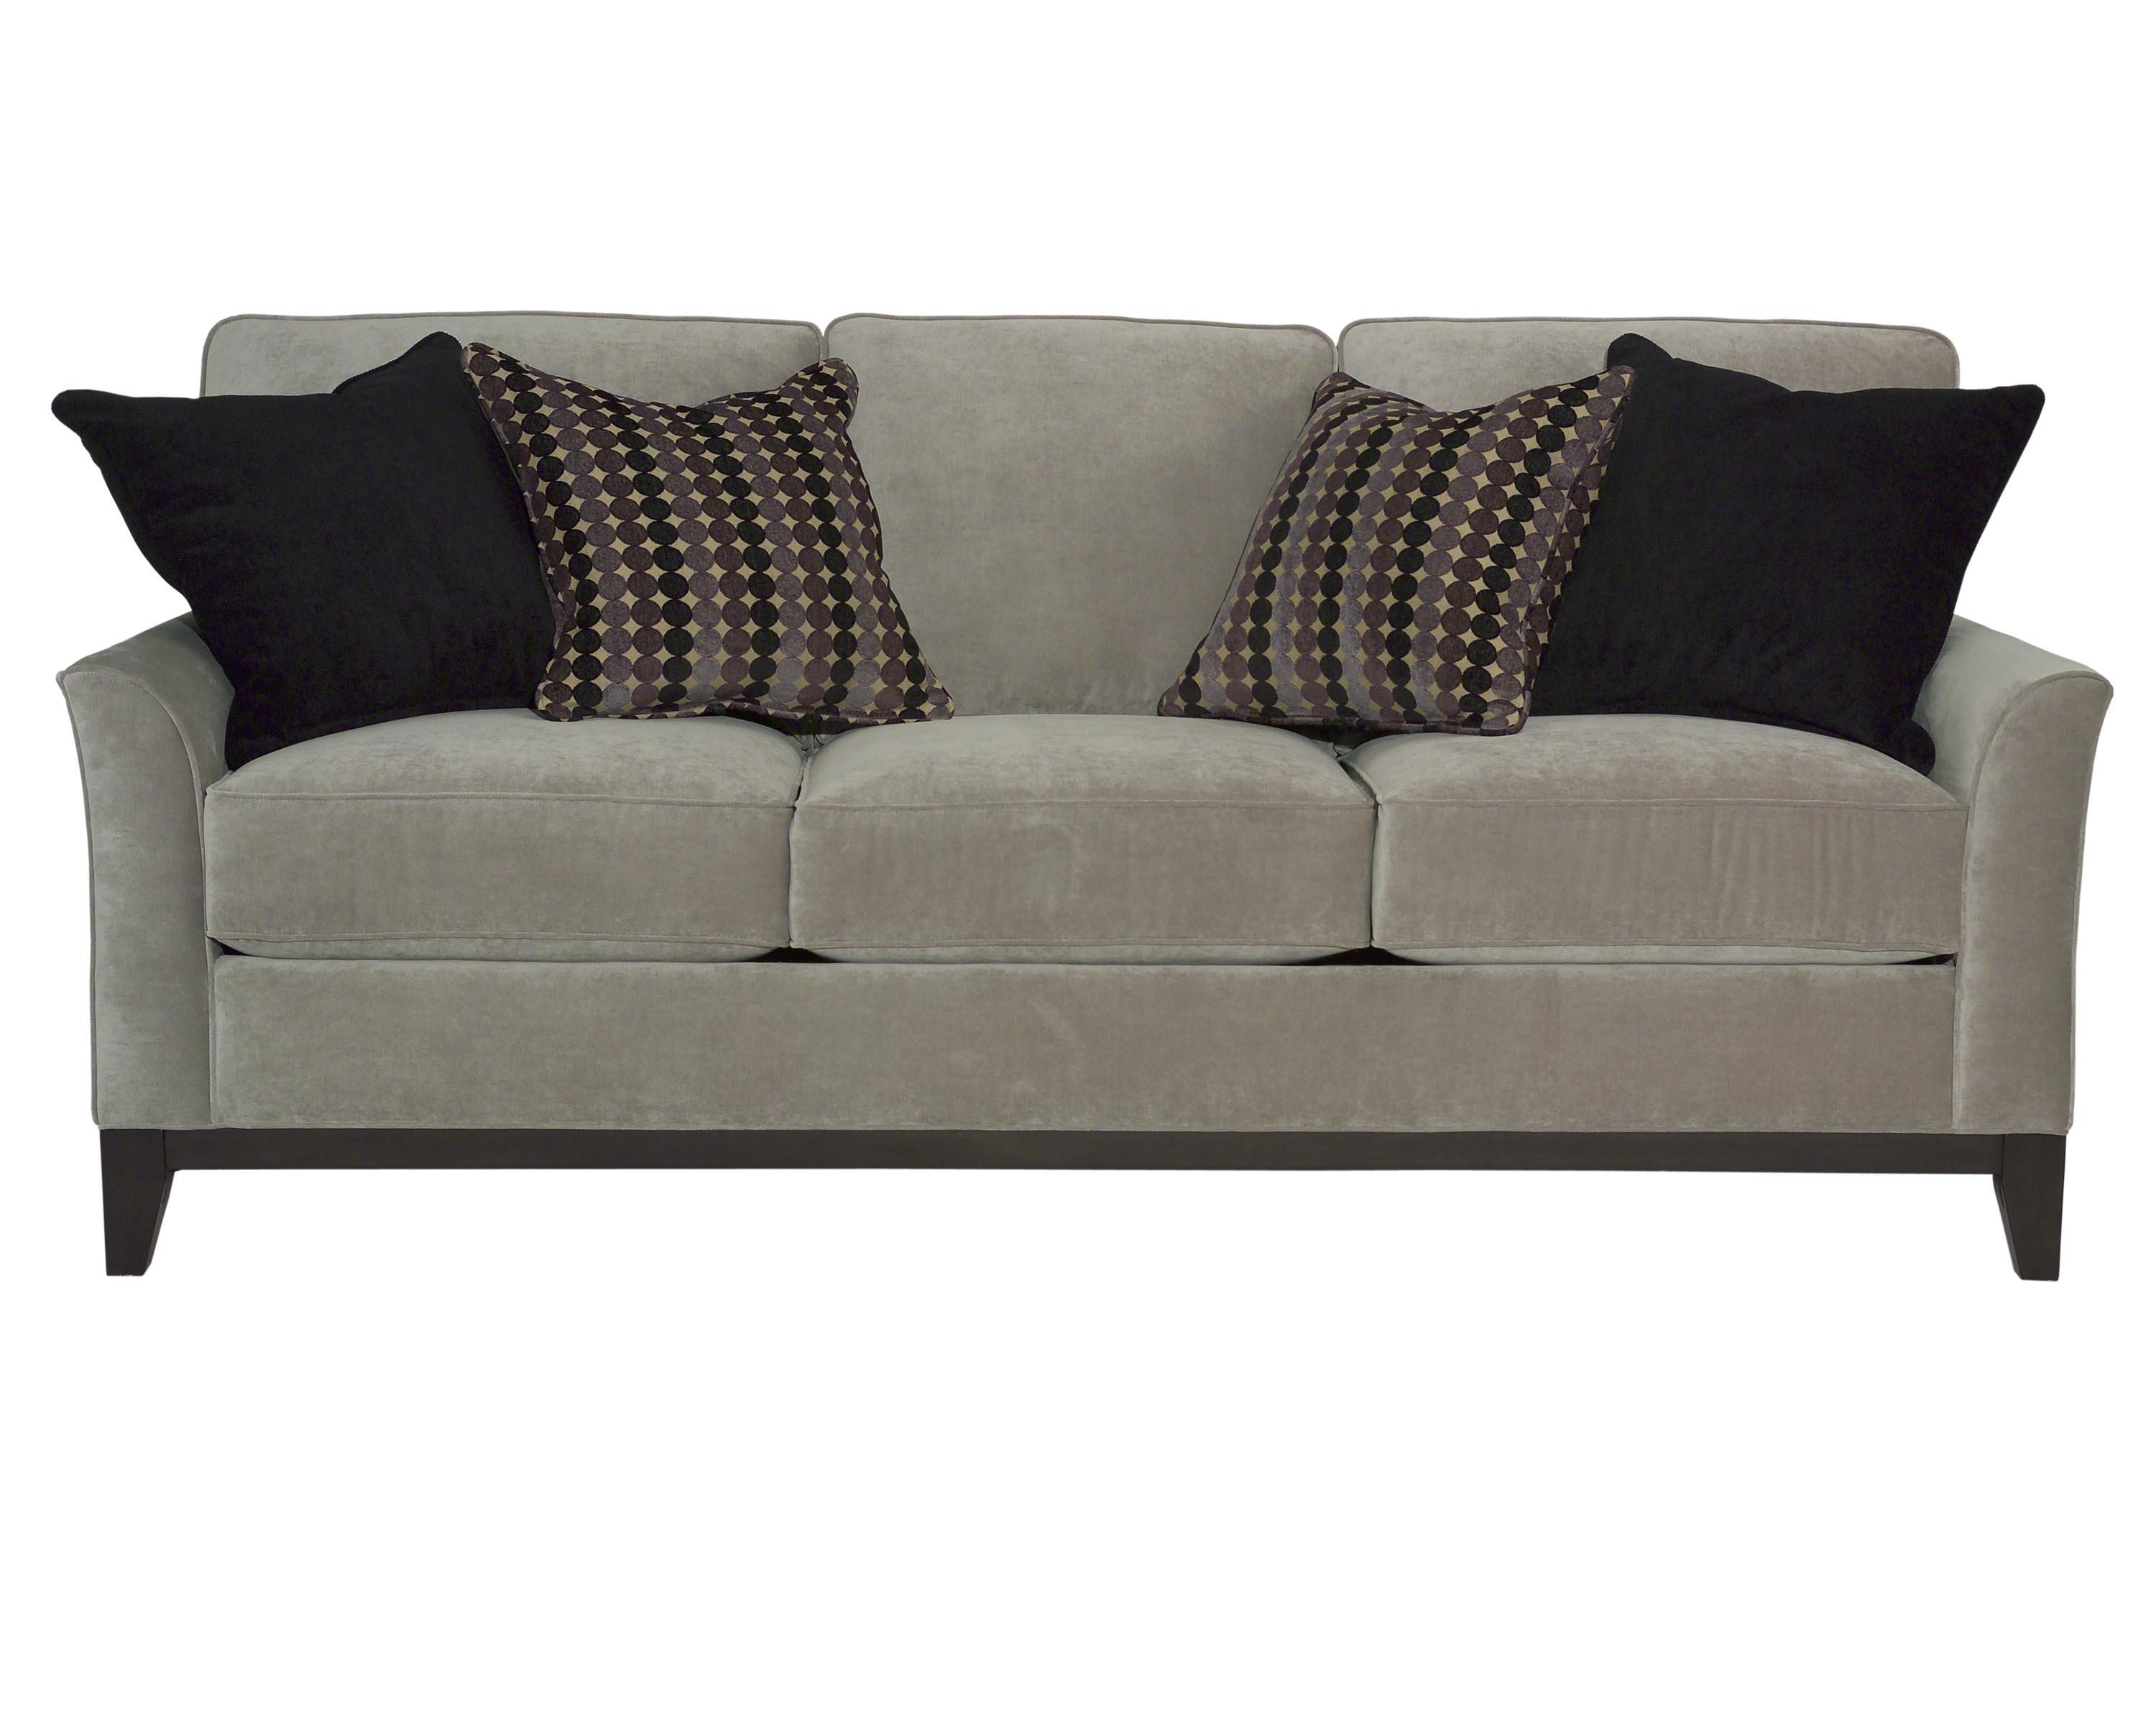 Broyhill Furniture Perspectives  Stationary Sofa - Item Number: 4445-3-7947-95